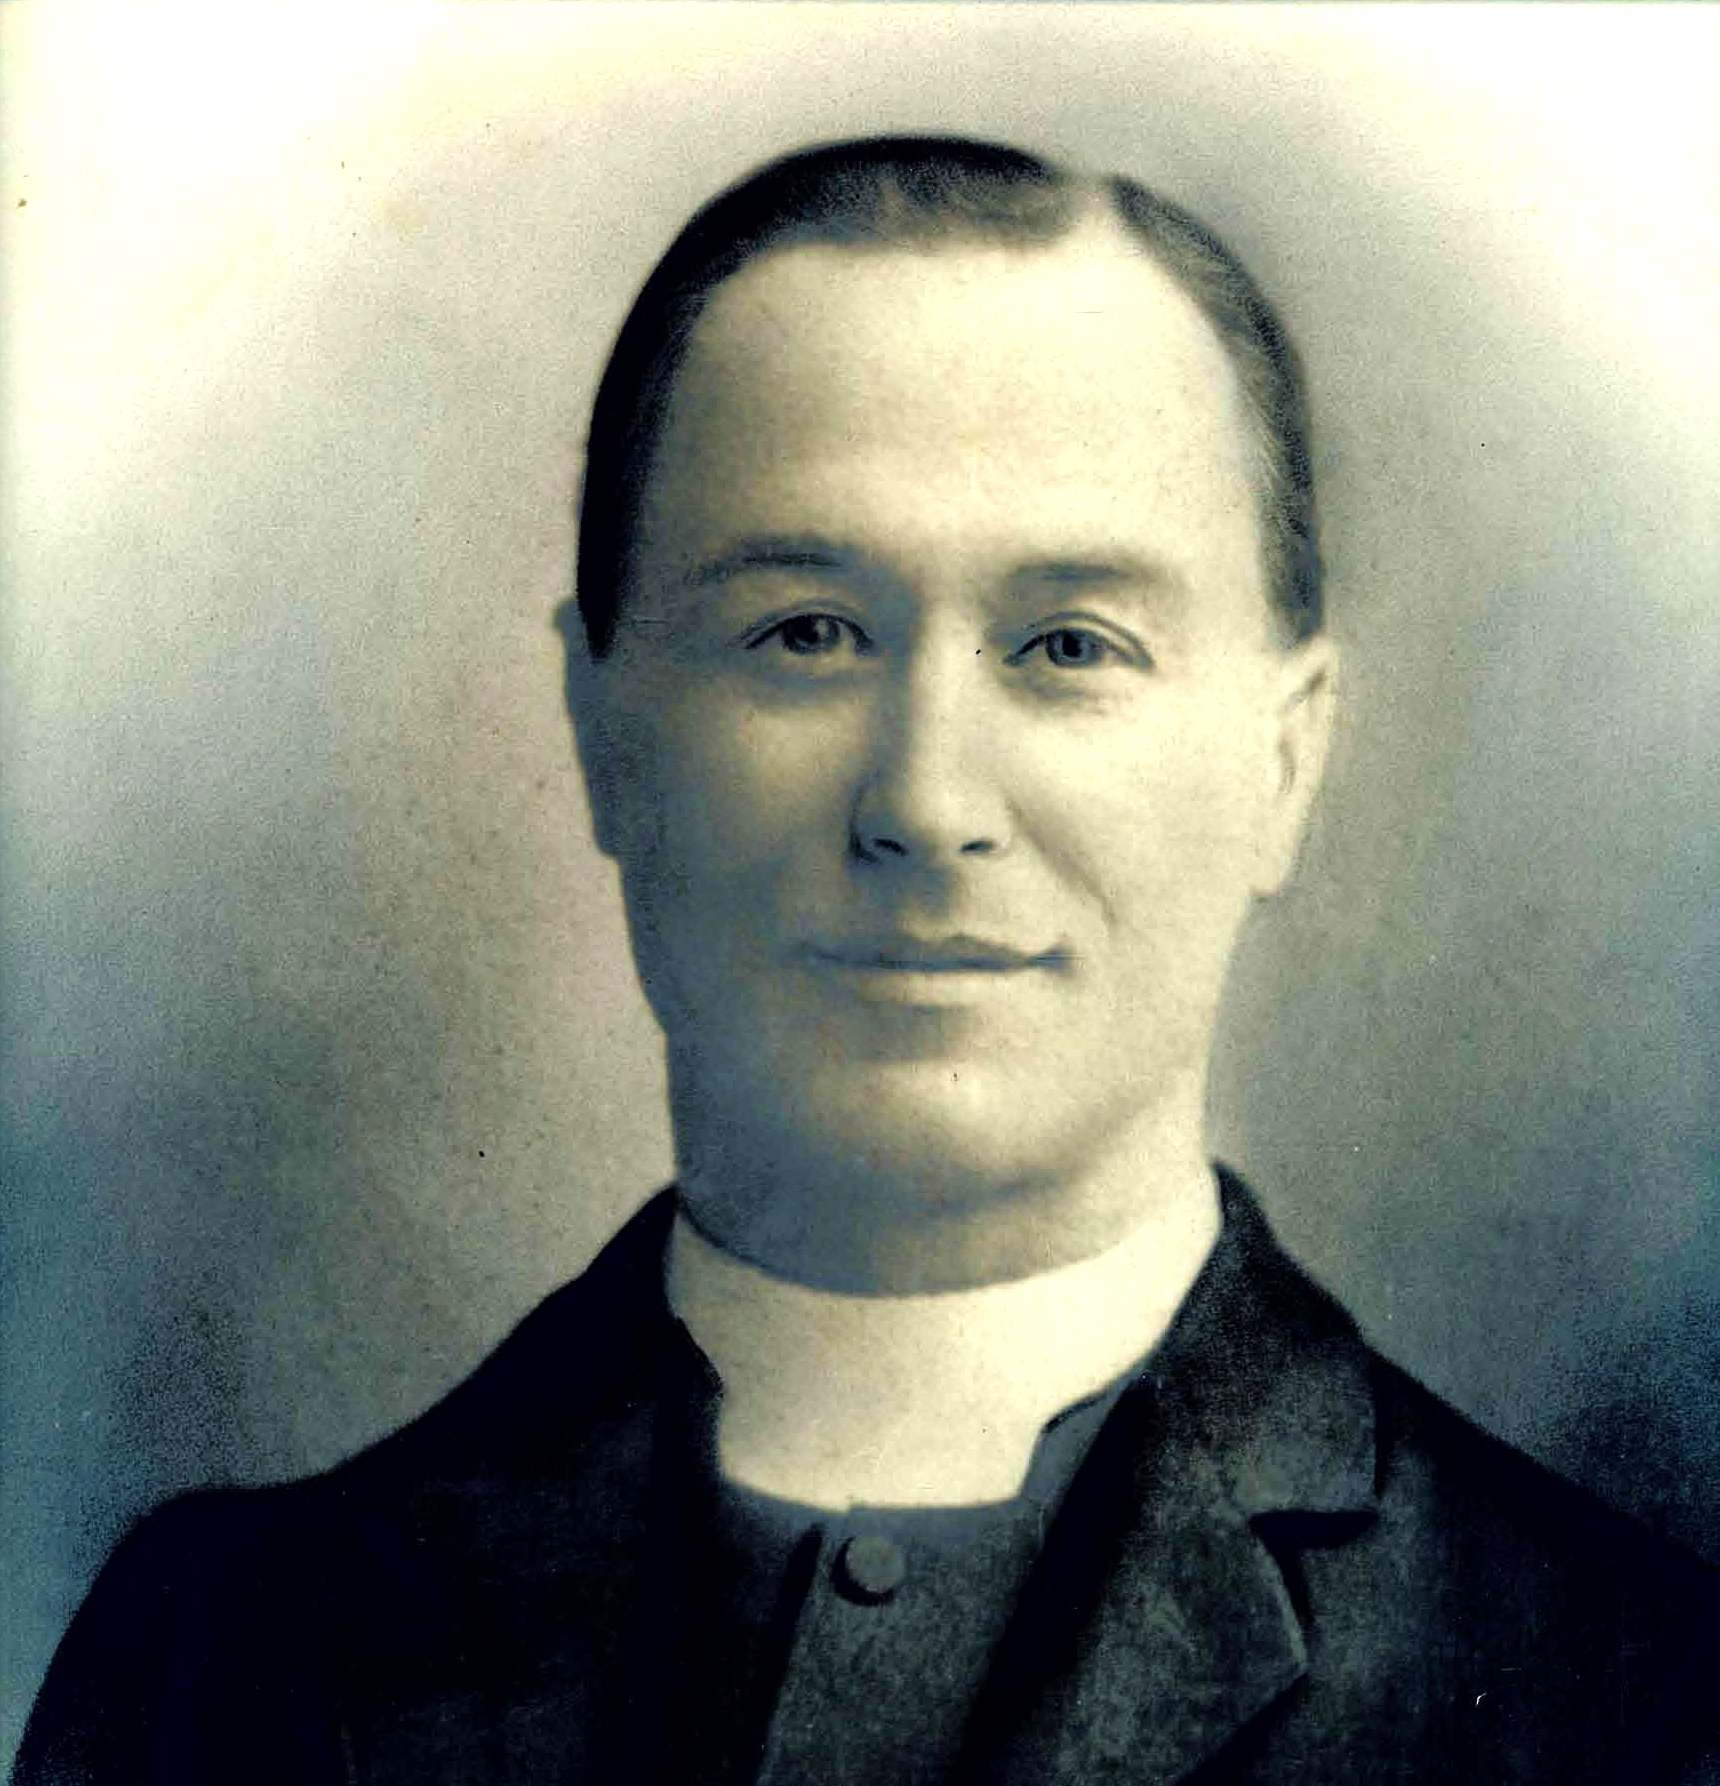 Black and white photograph of a white man in his middle years wearing a cleric's dog collar.